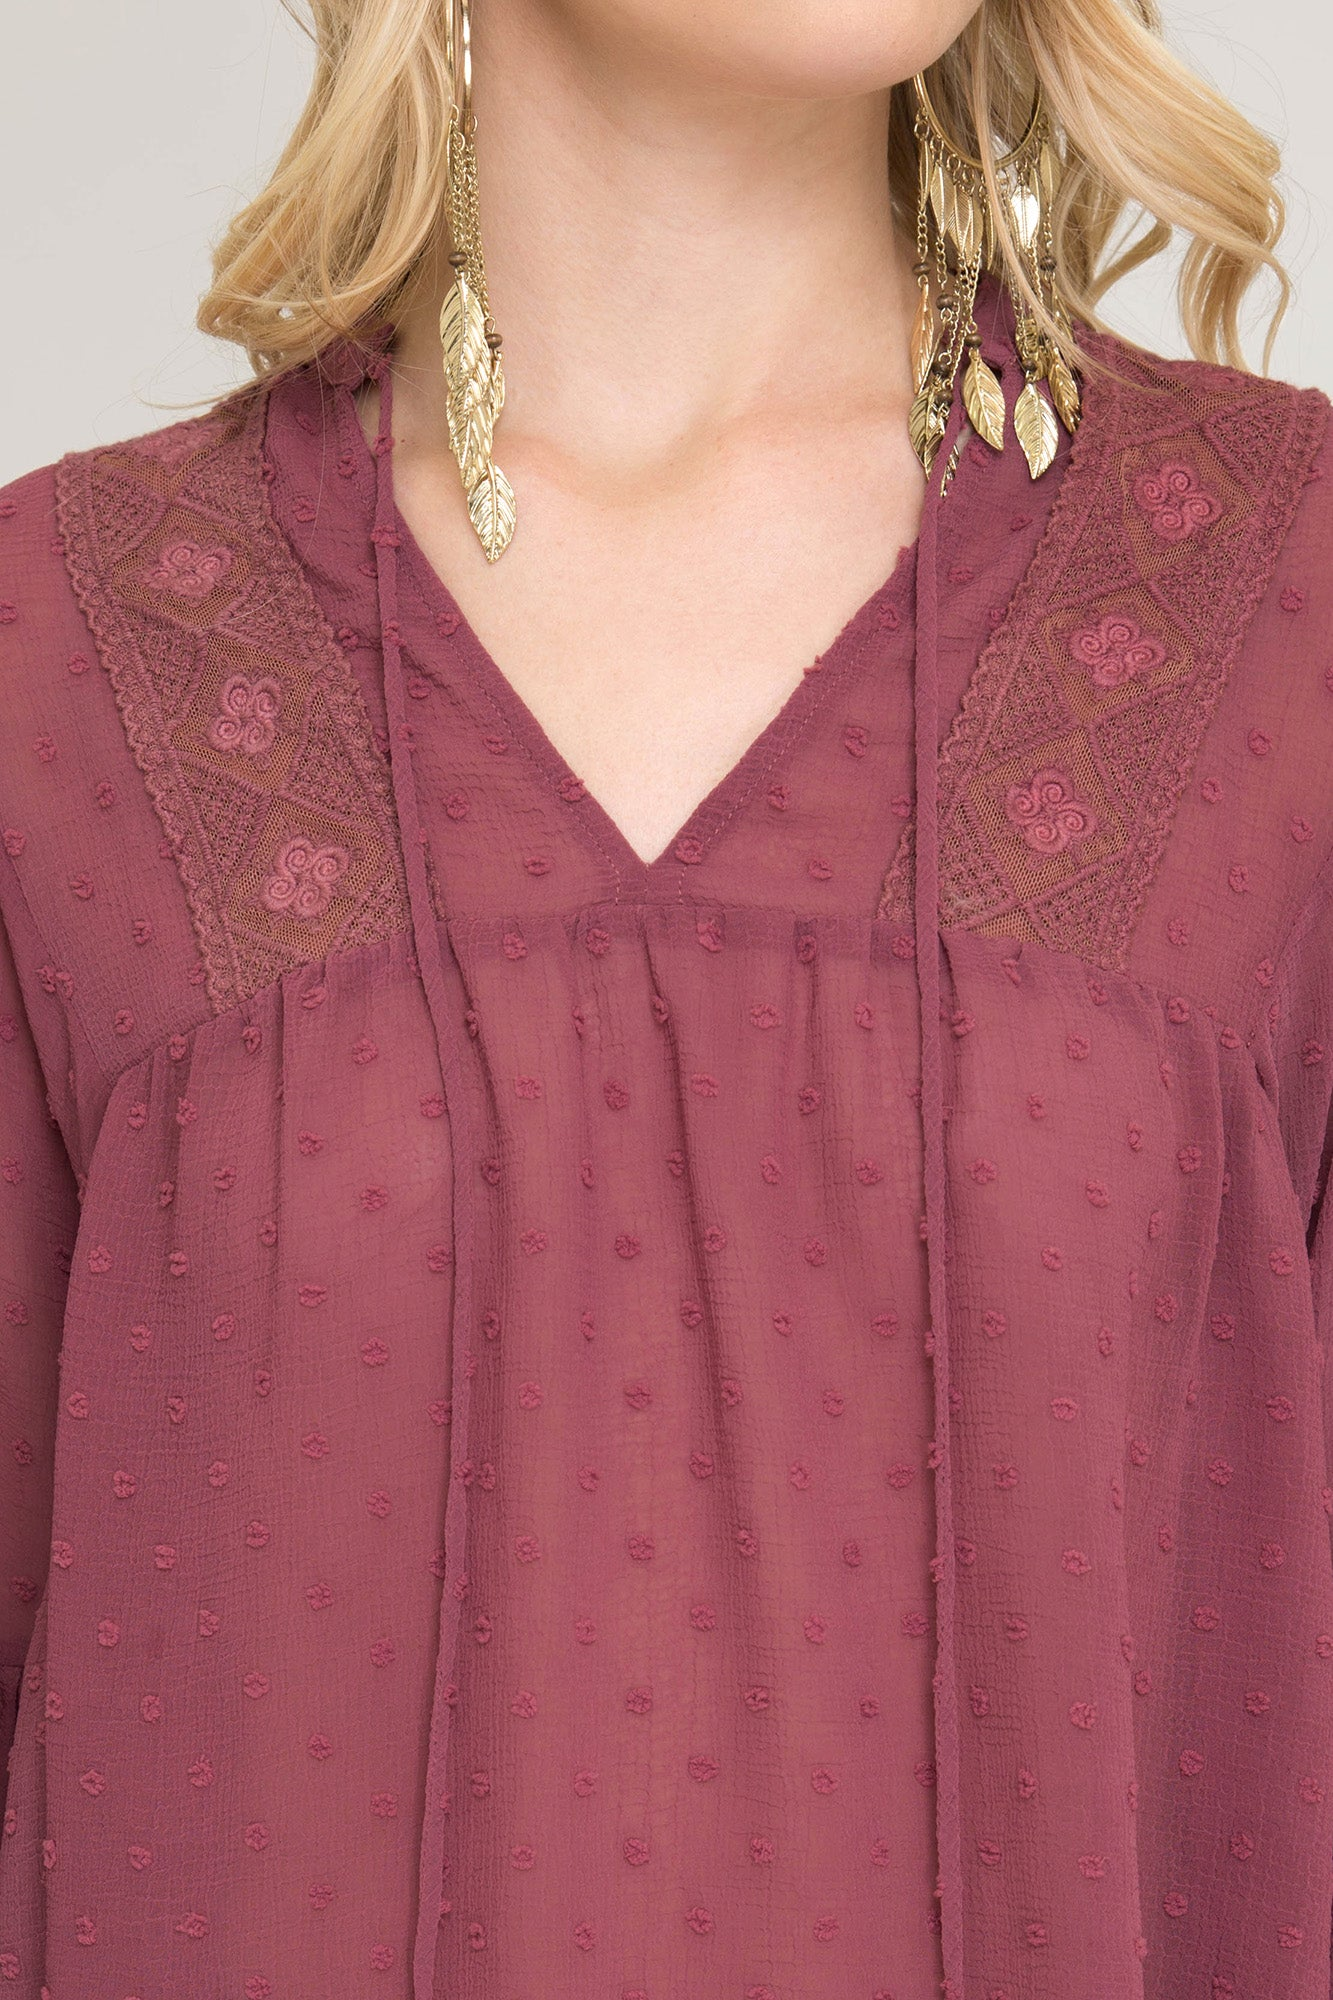 3/4 Balloon Sleeve Dot Textured Woven Top with Lace Trim